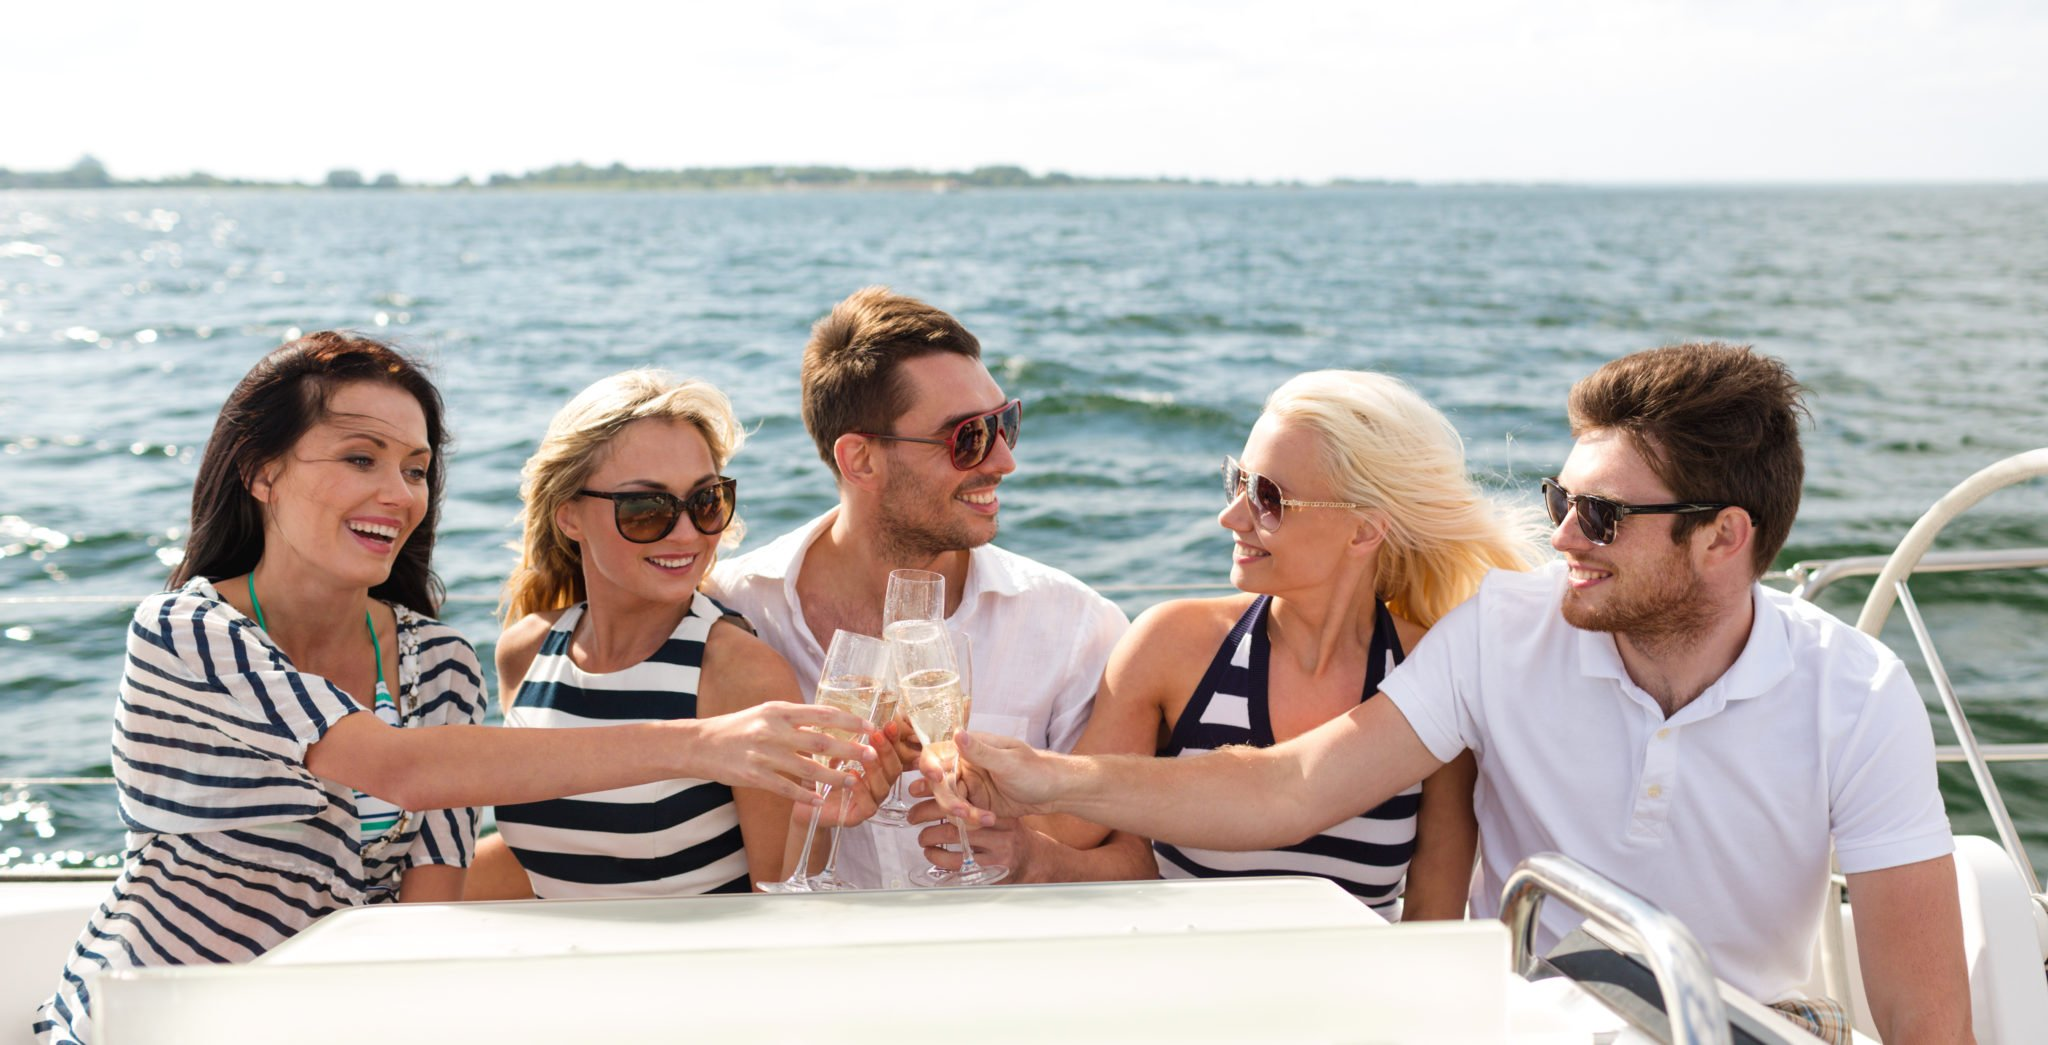 Party boat rentals near me, party boat rentals, party boat rental